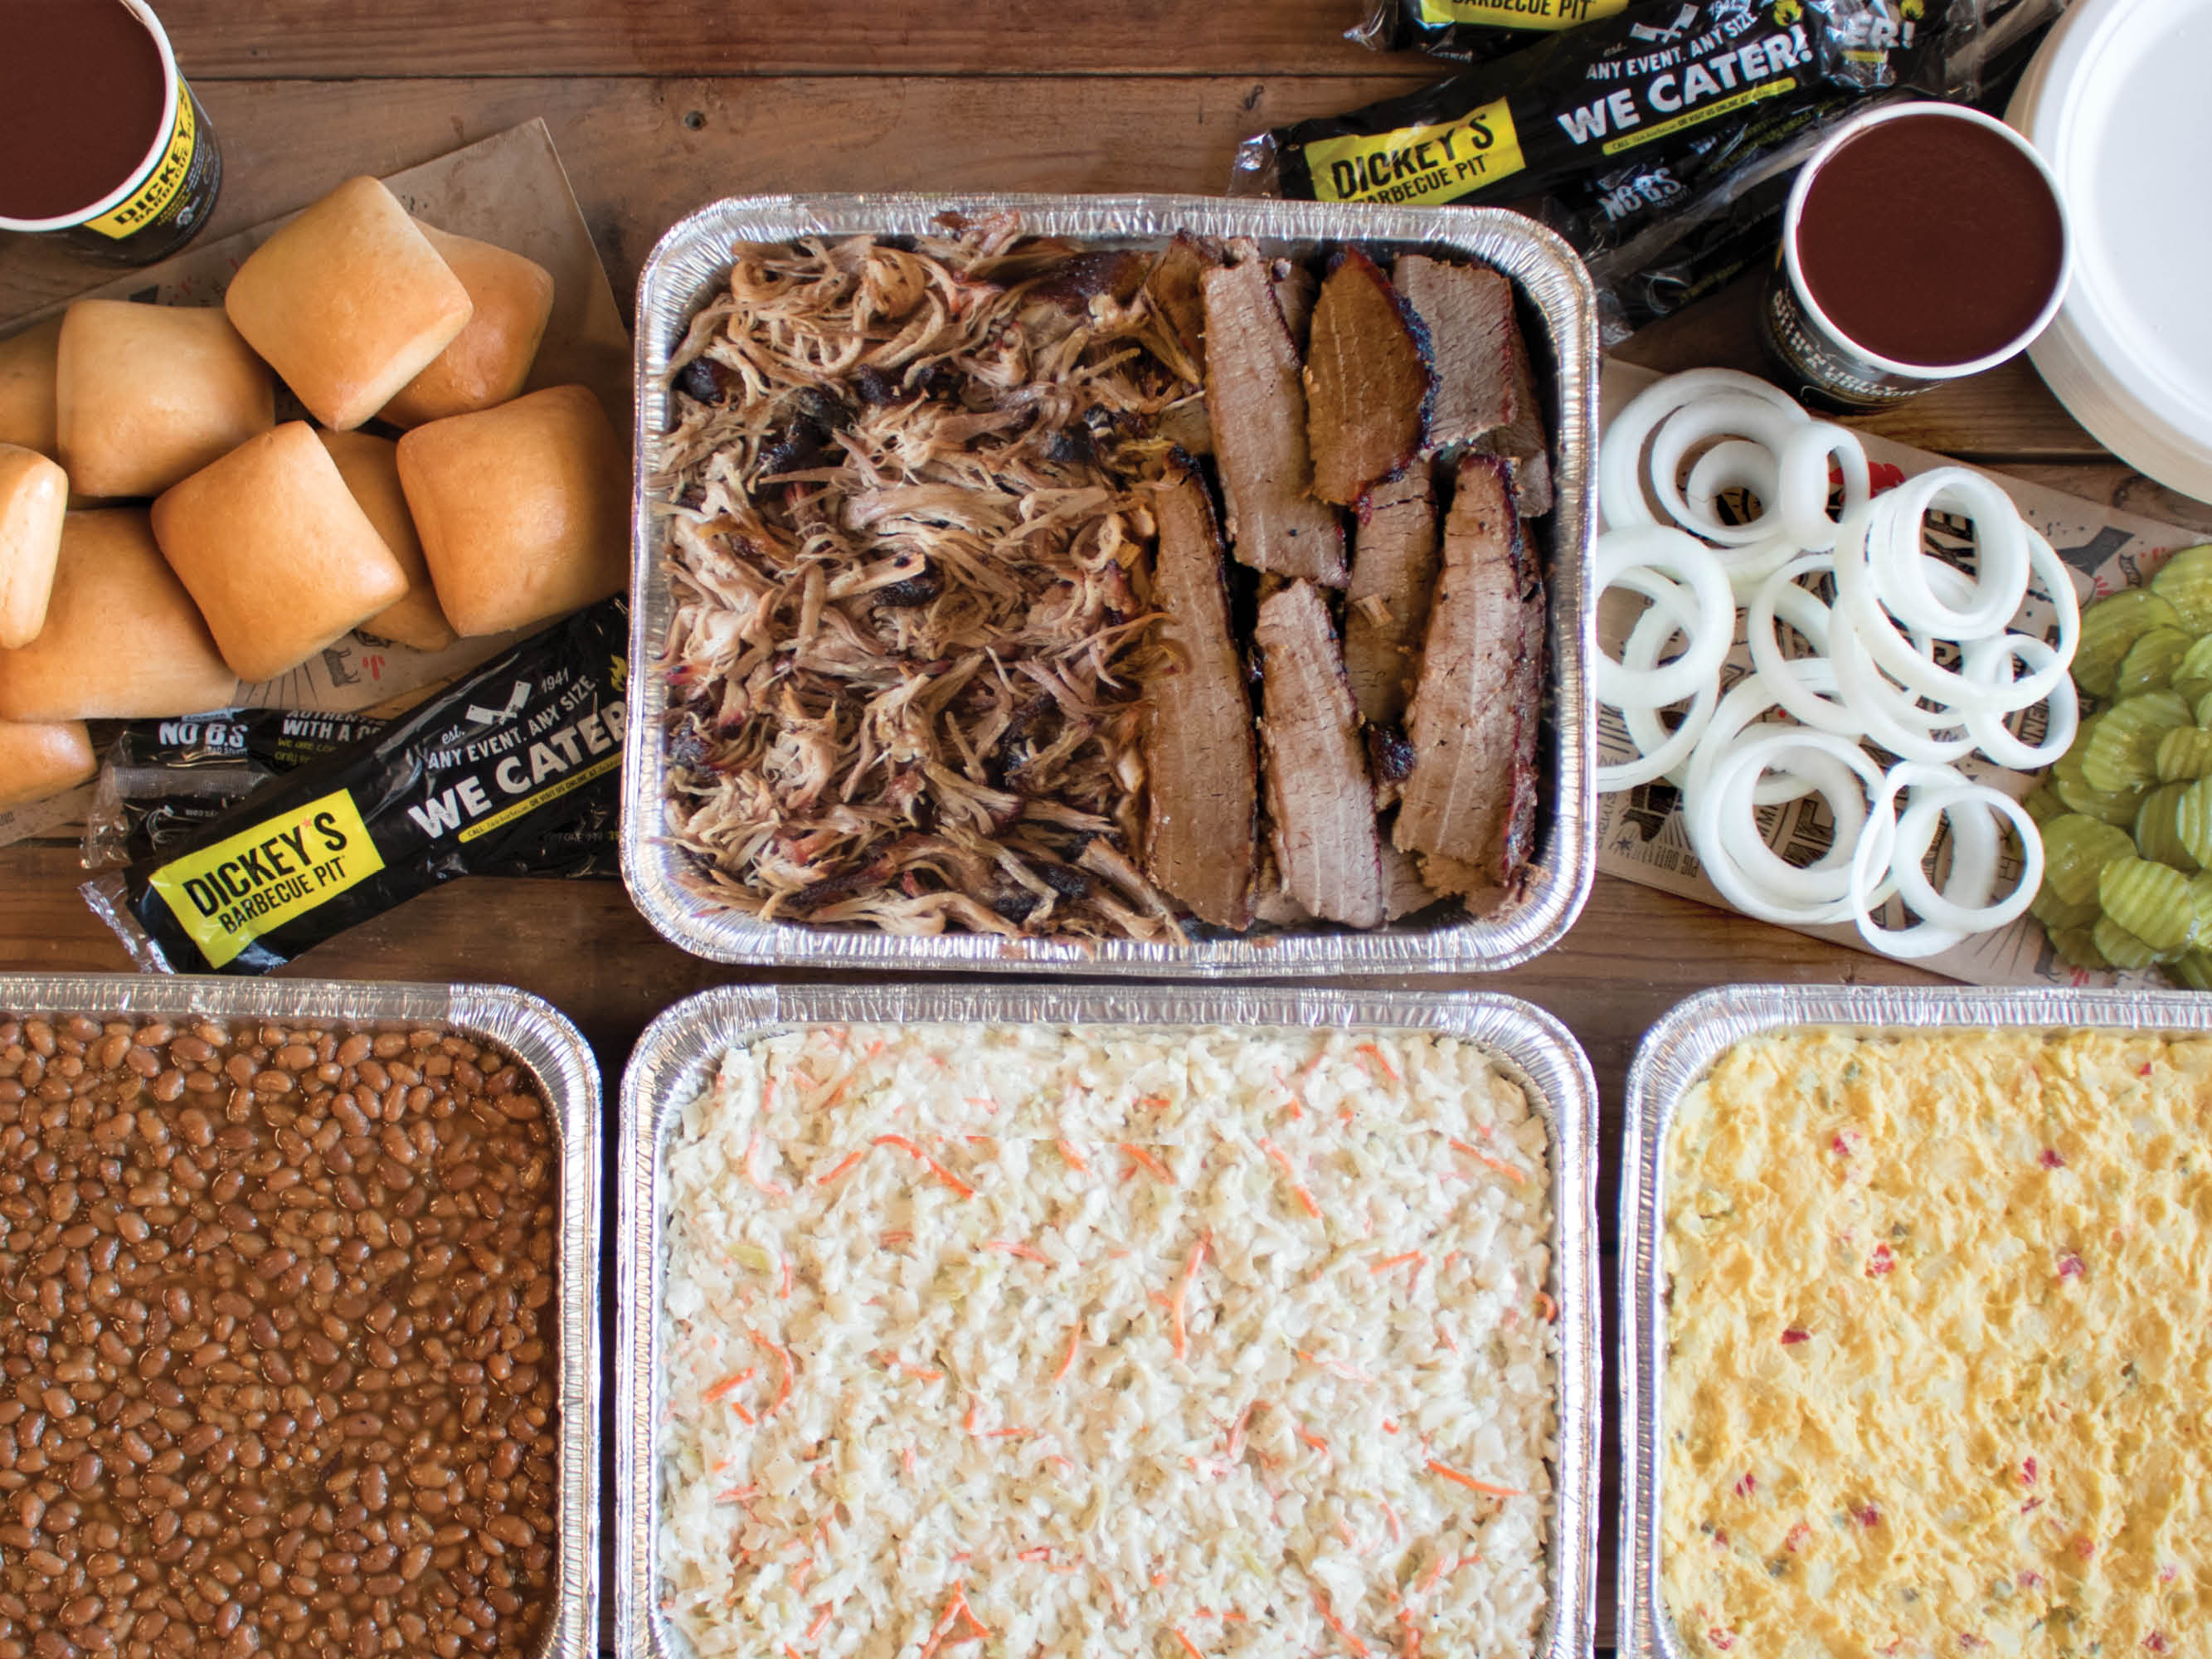 FOX 5 Las Vegas: Dickey's Barbecue Pit Tailgate Party Pack